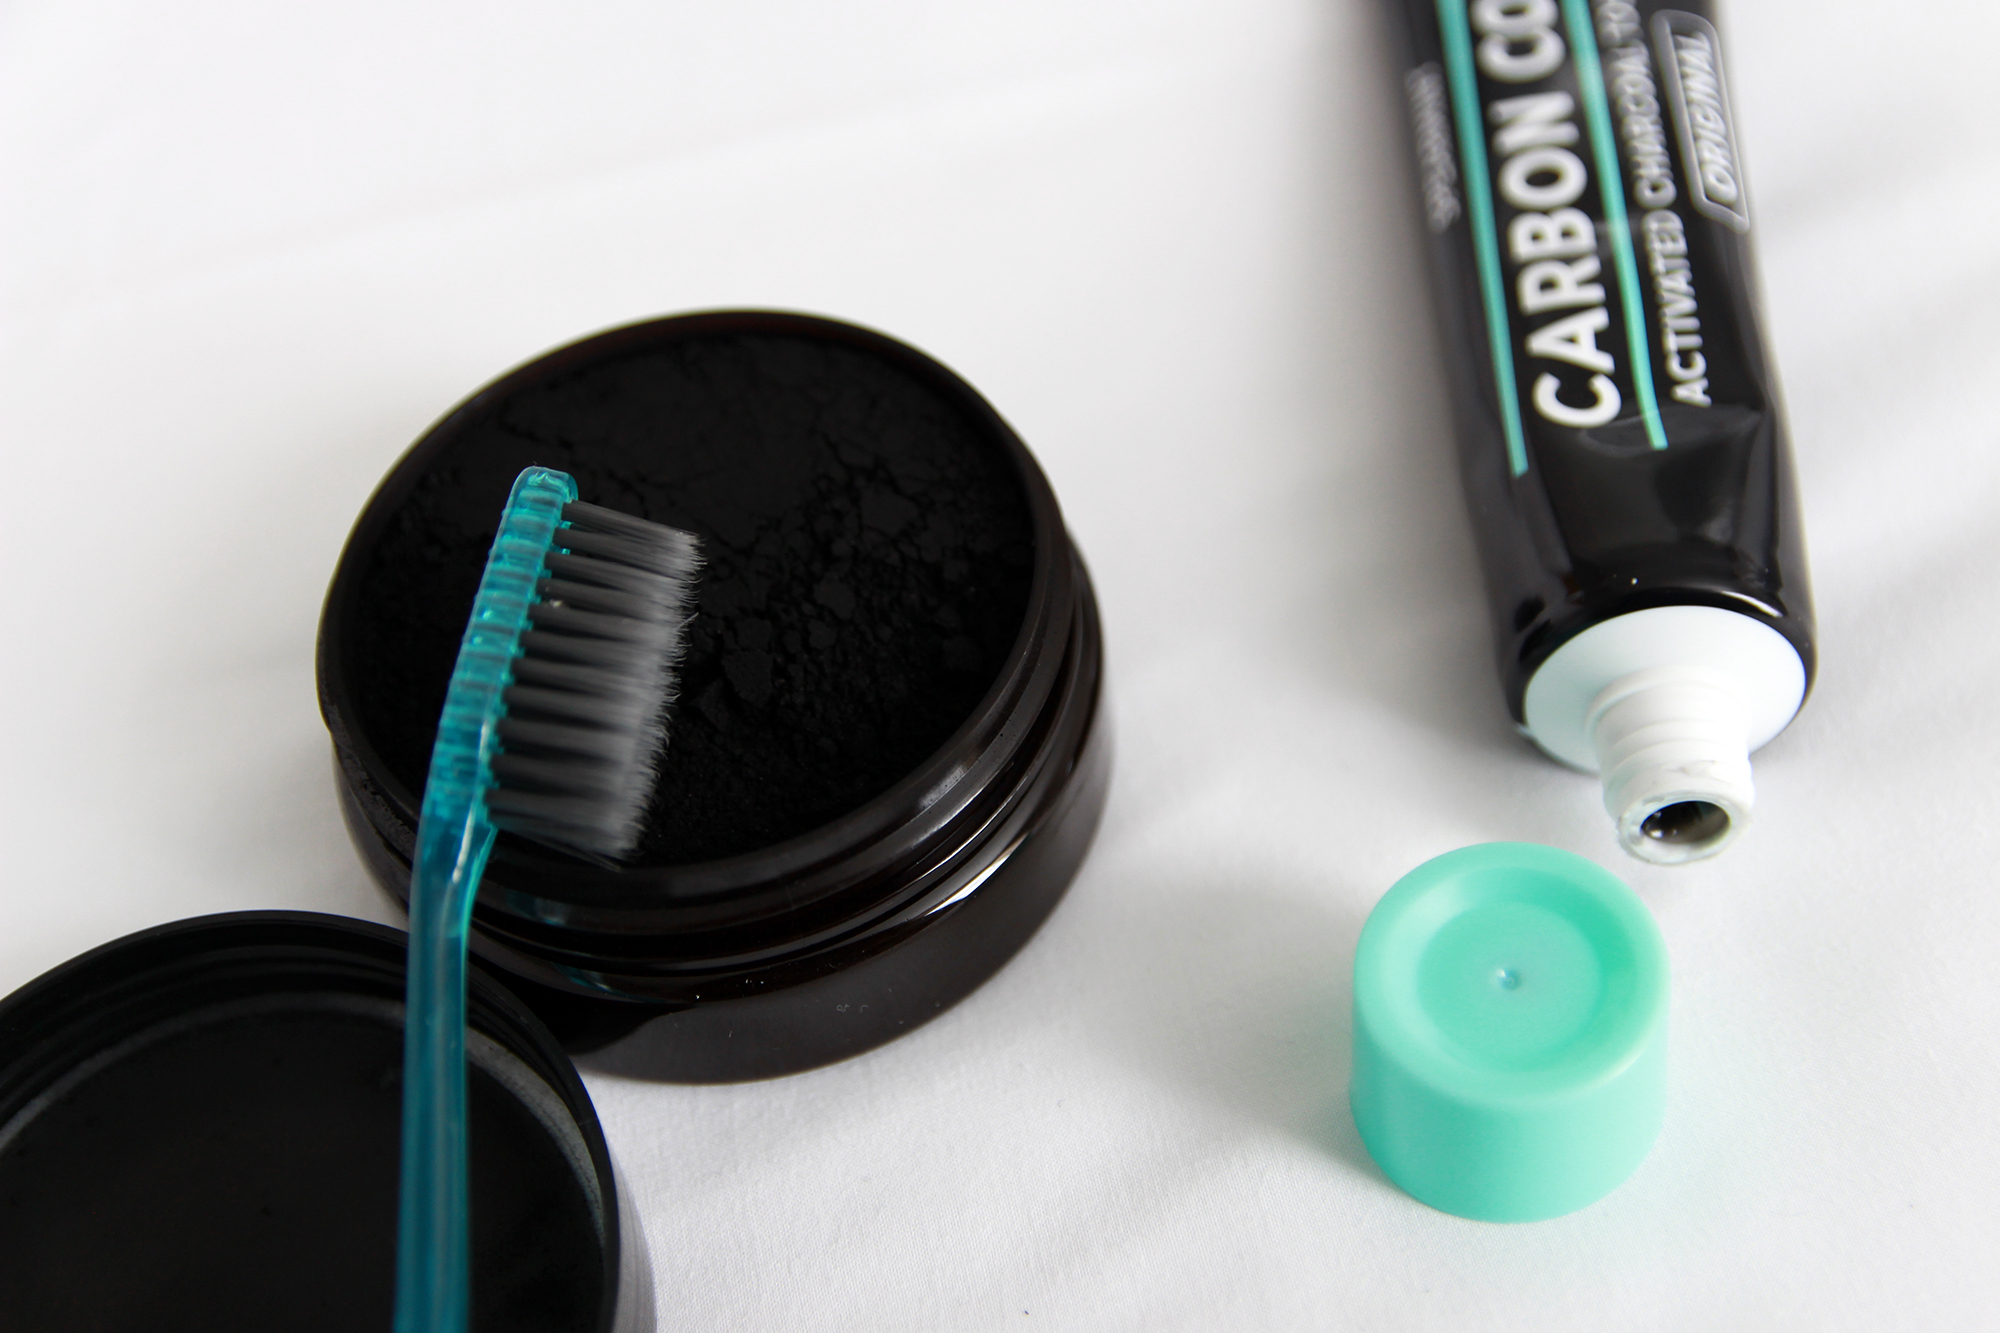 carbon-coco-ultimate-whitening-kit-review